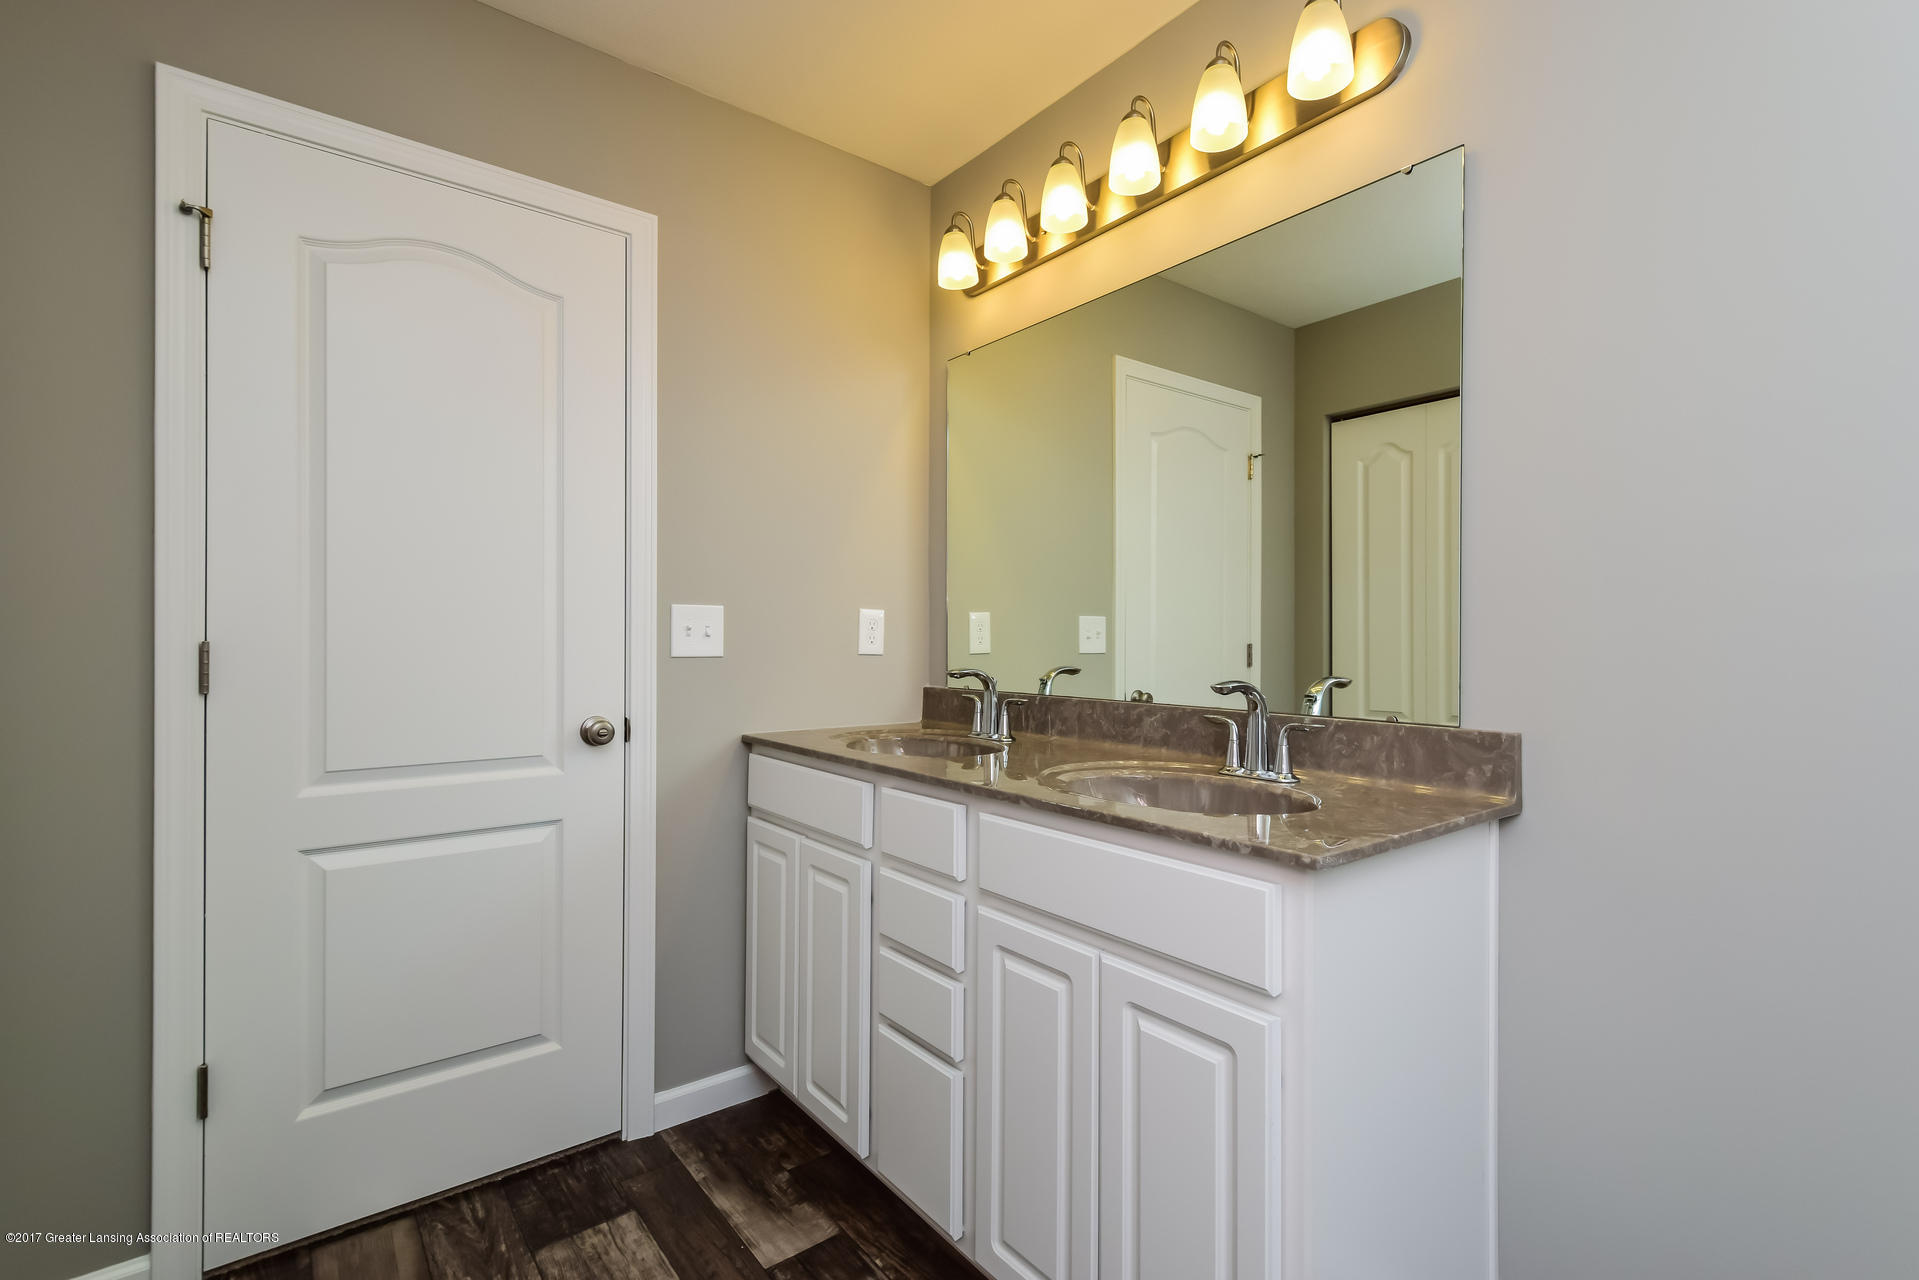 960 Pennine Ridge Way - Master Bath MDE017-E2070-1 - 16